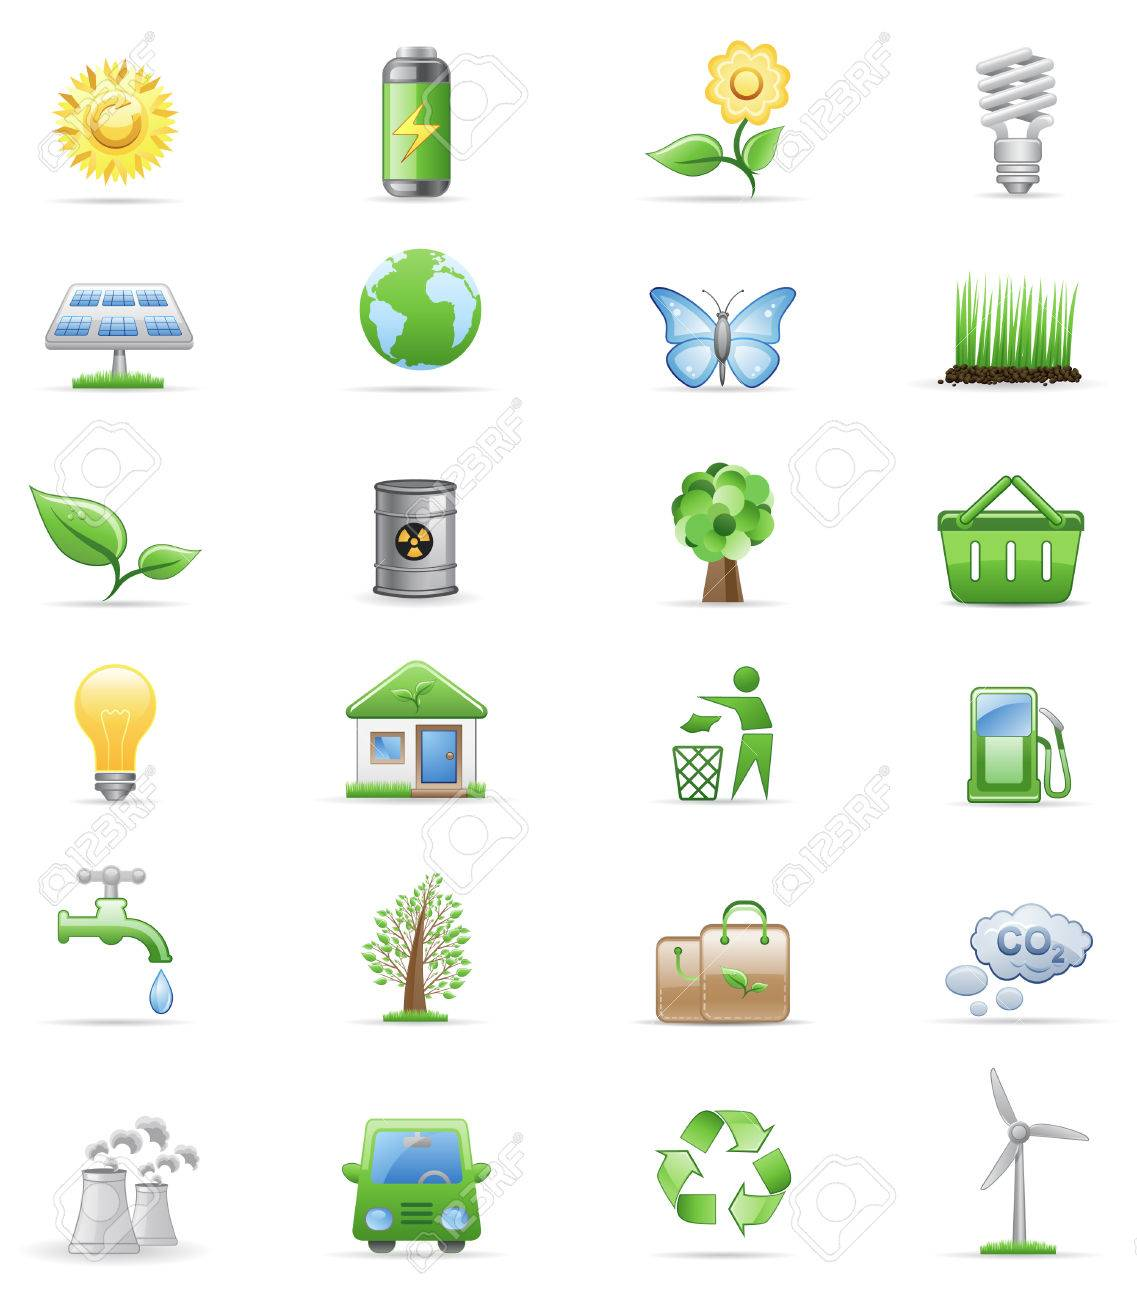 Environment icon set Stock Vector - 6721526